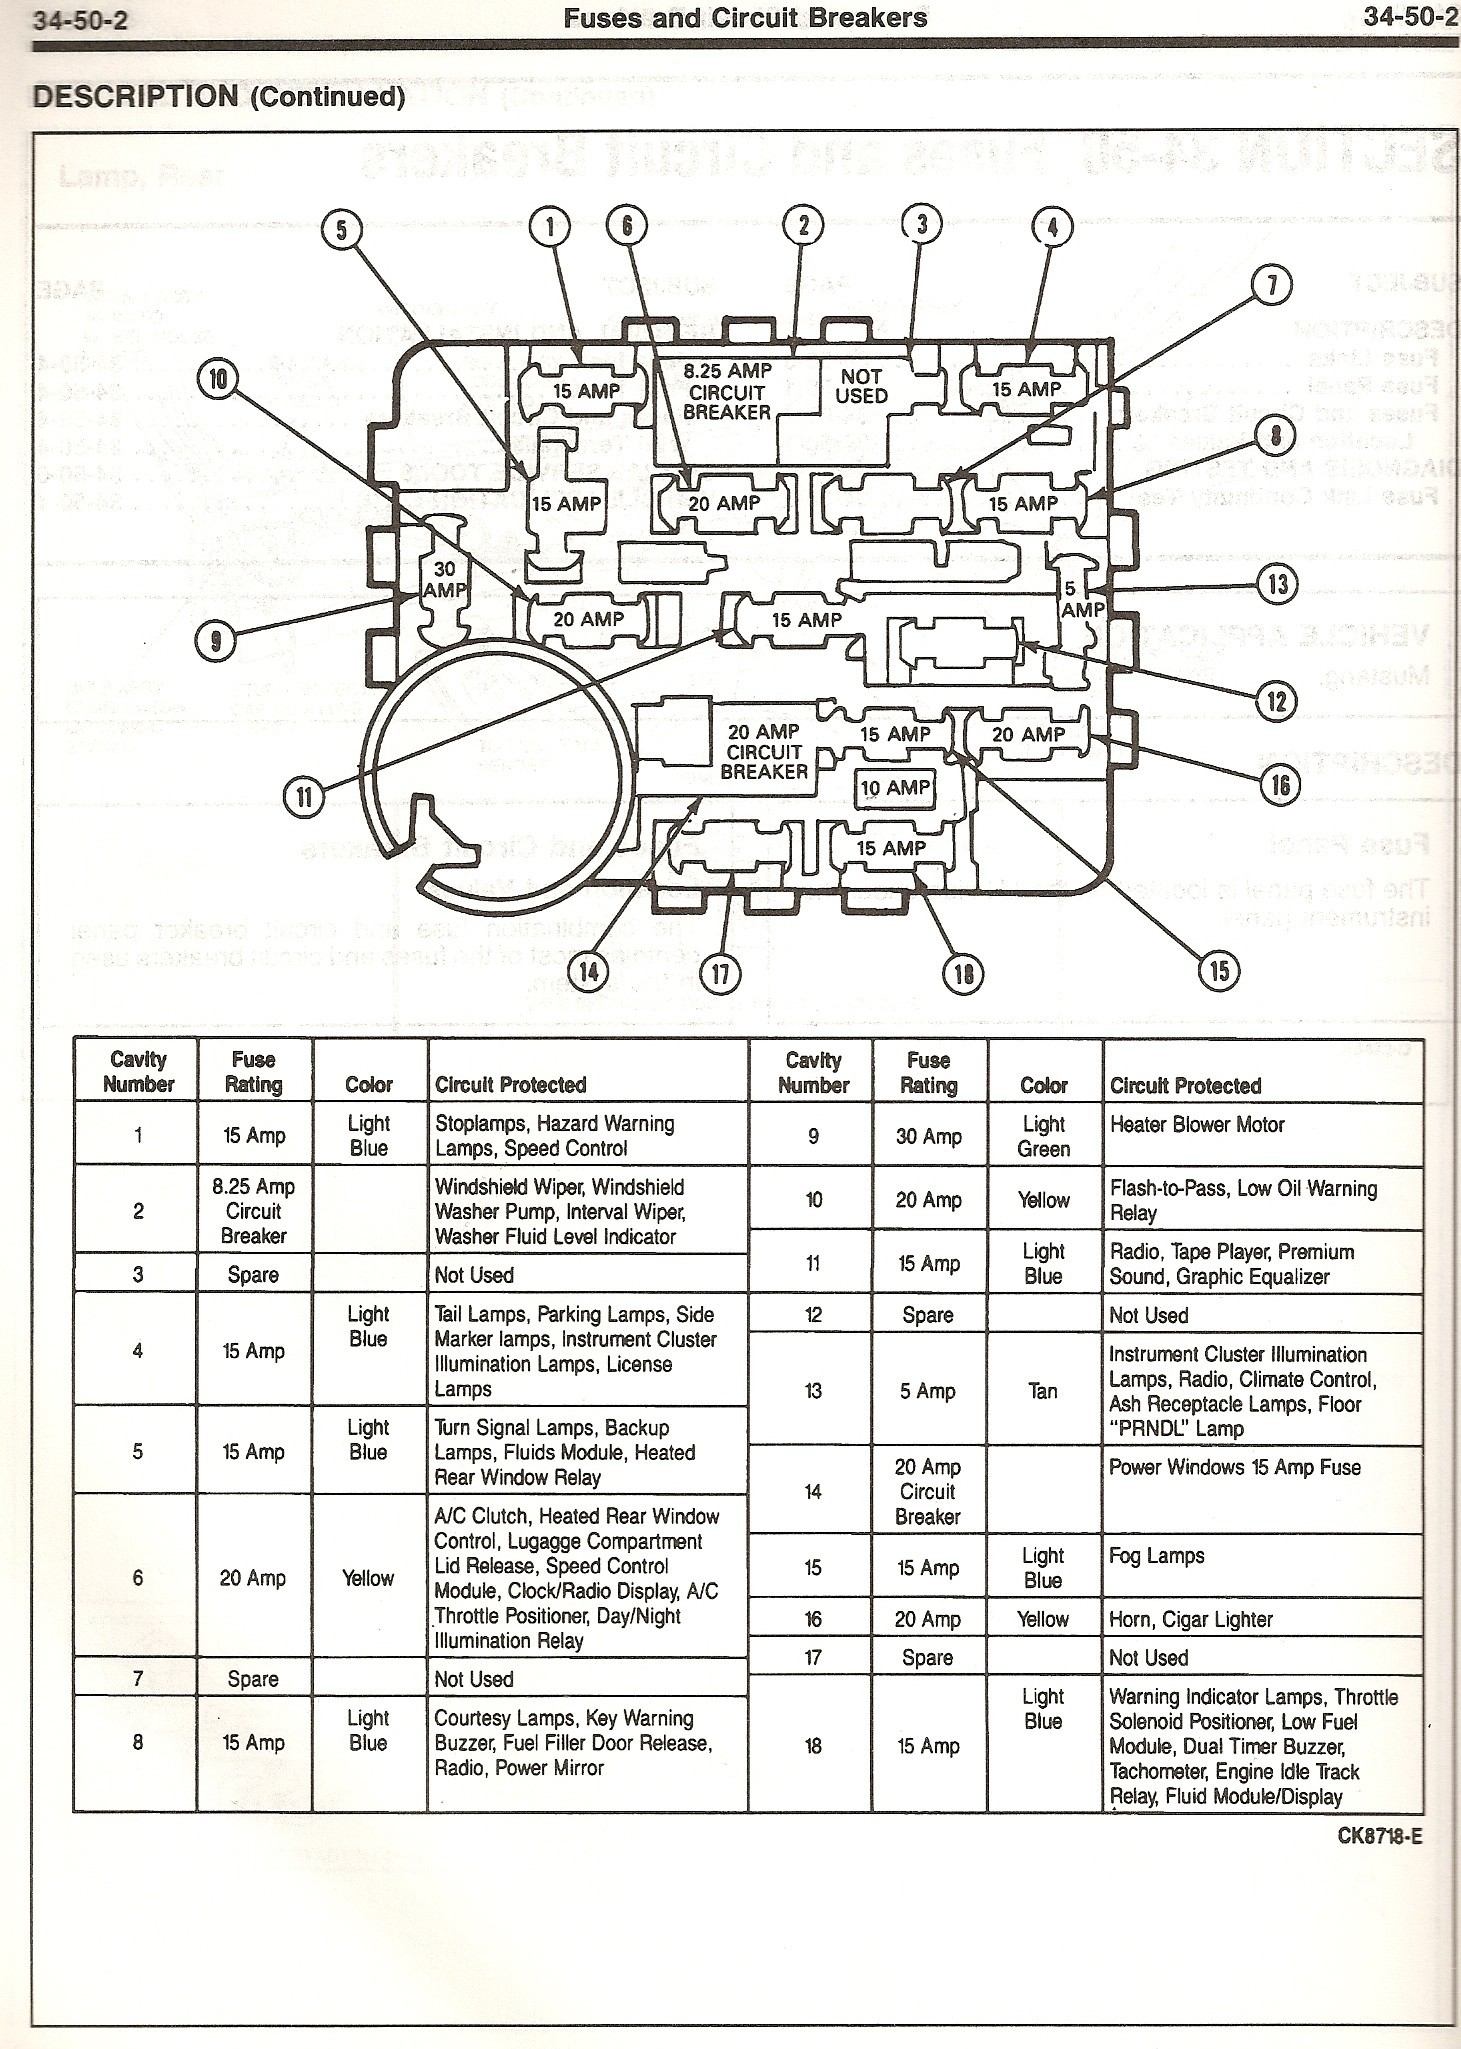 1997 Ford F150 4 6l Fuse Box Diagram | Wiring Liry  L Wiring Diagram on